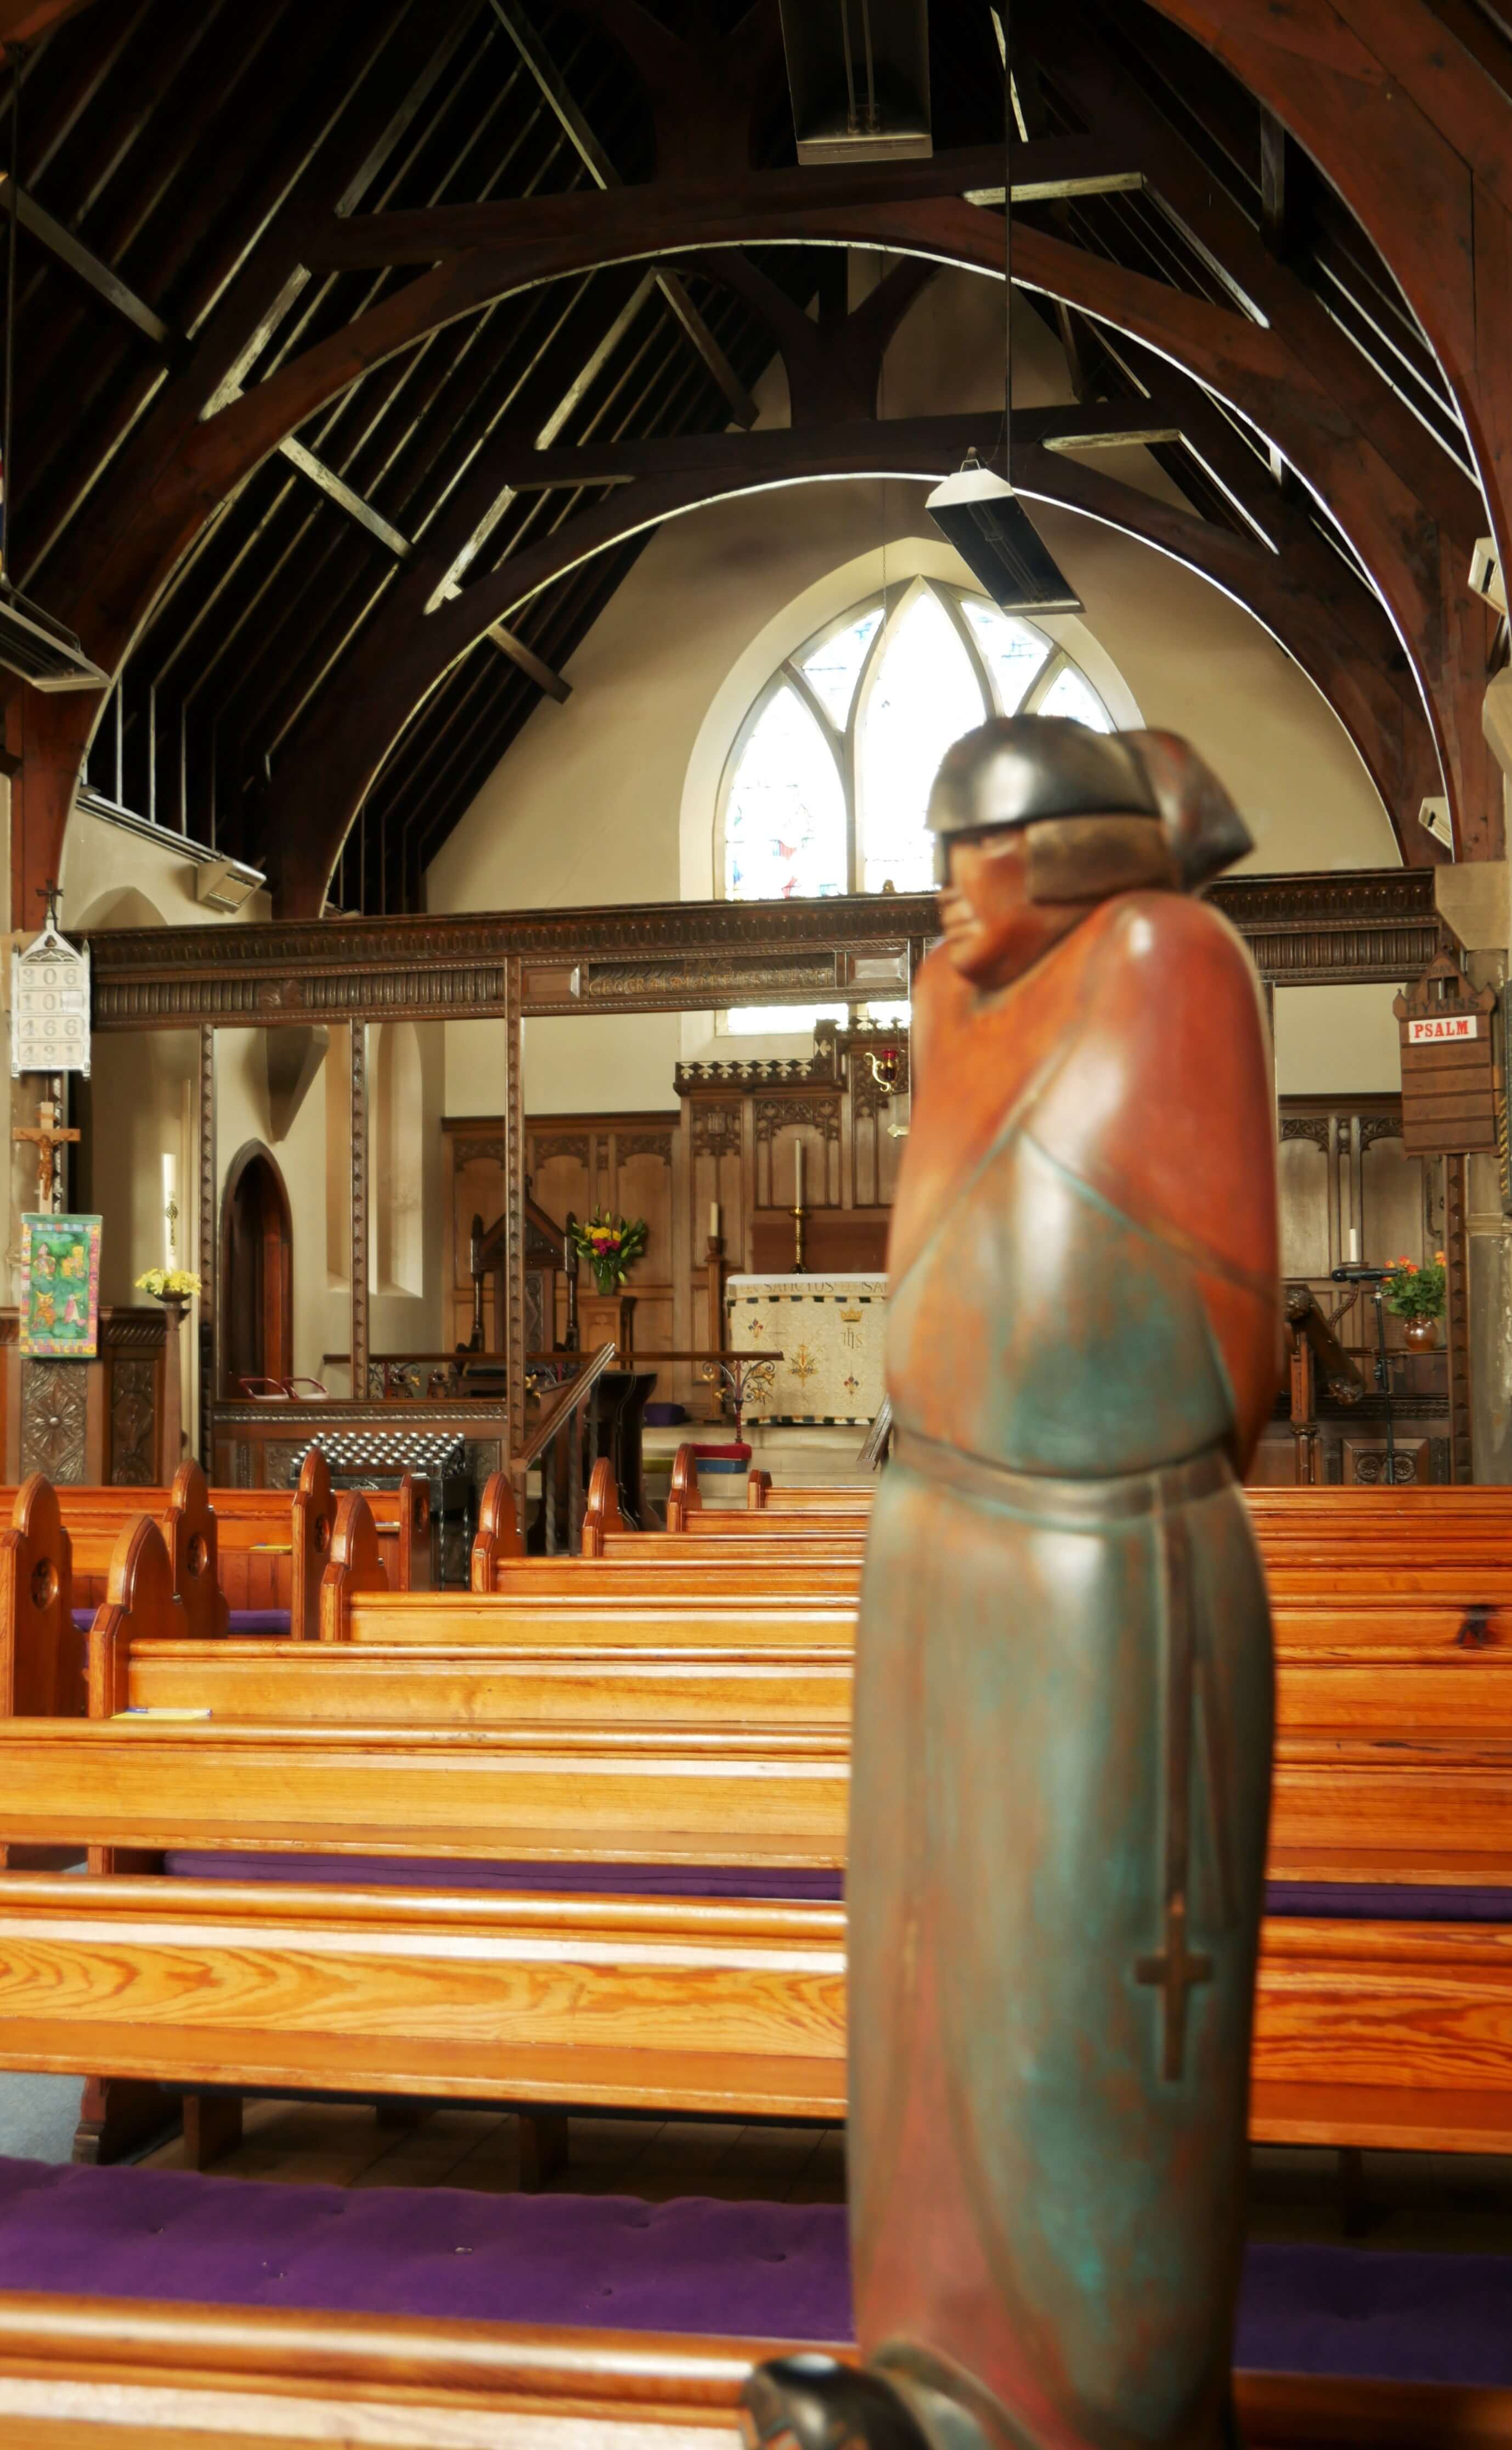 St Olaf's Episcopal Church, Kirkwall, Orkney Islands, Scotland, UK https:www.orkneyology.com